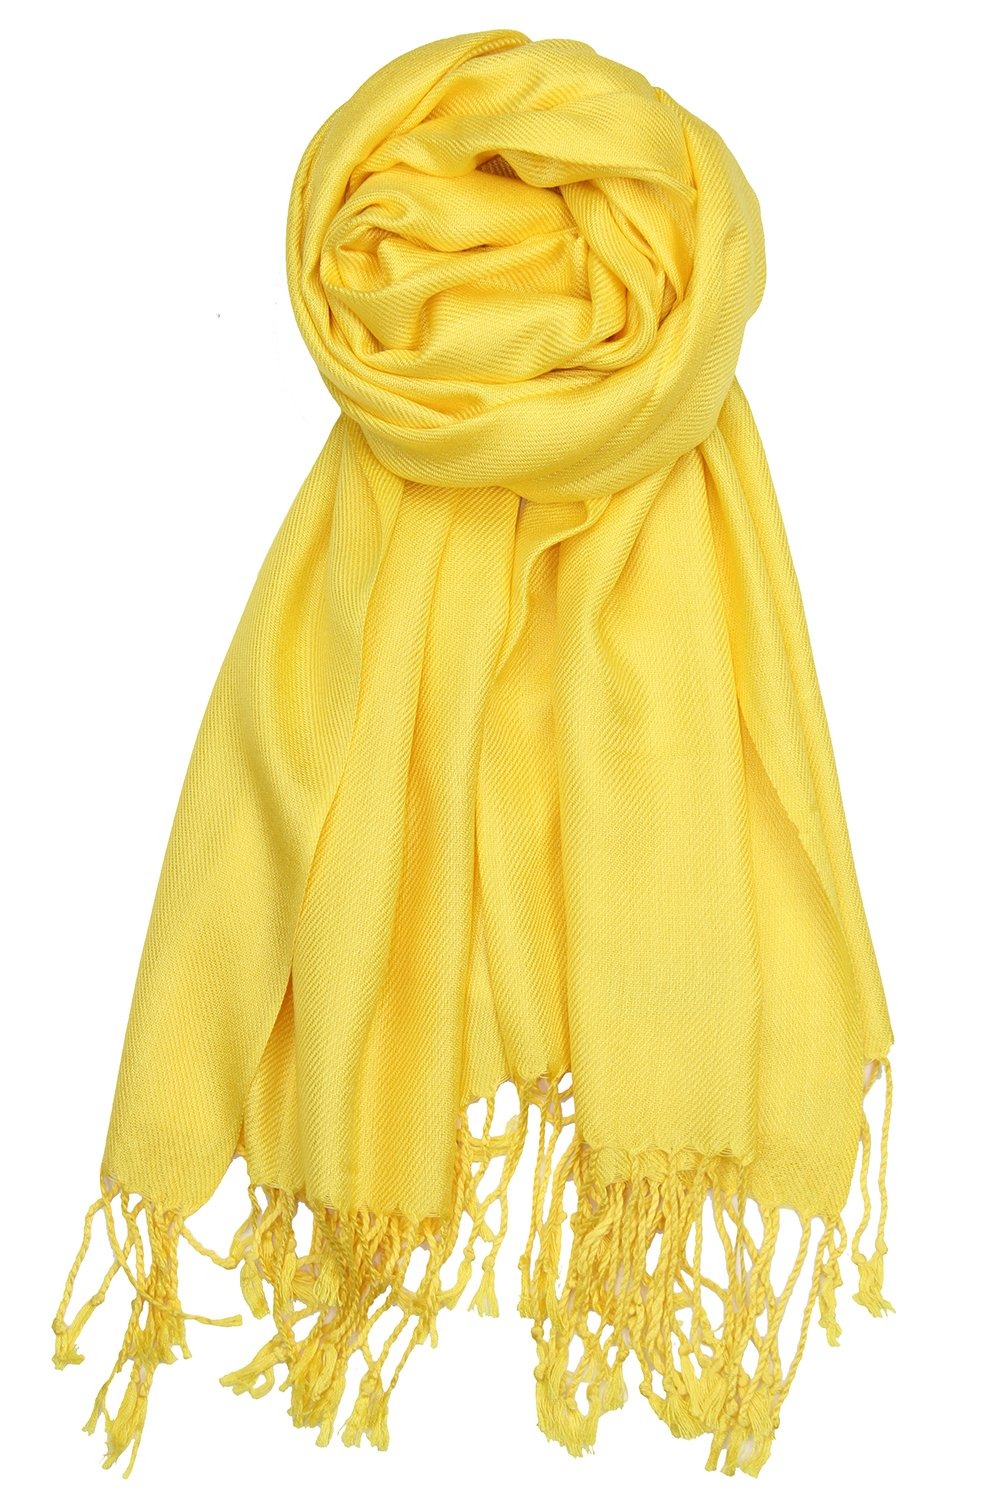 Achillea Large Soft Silky Pashmina Shawl Wrap Scarf in Solid Colors (Yellow)